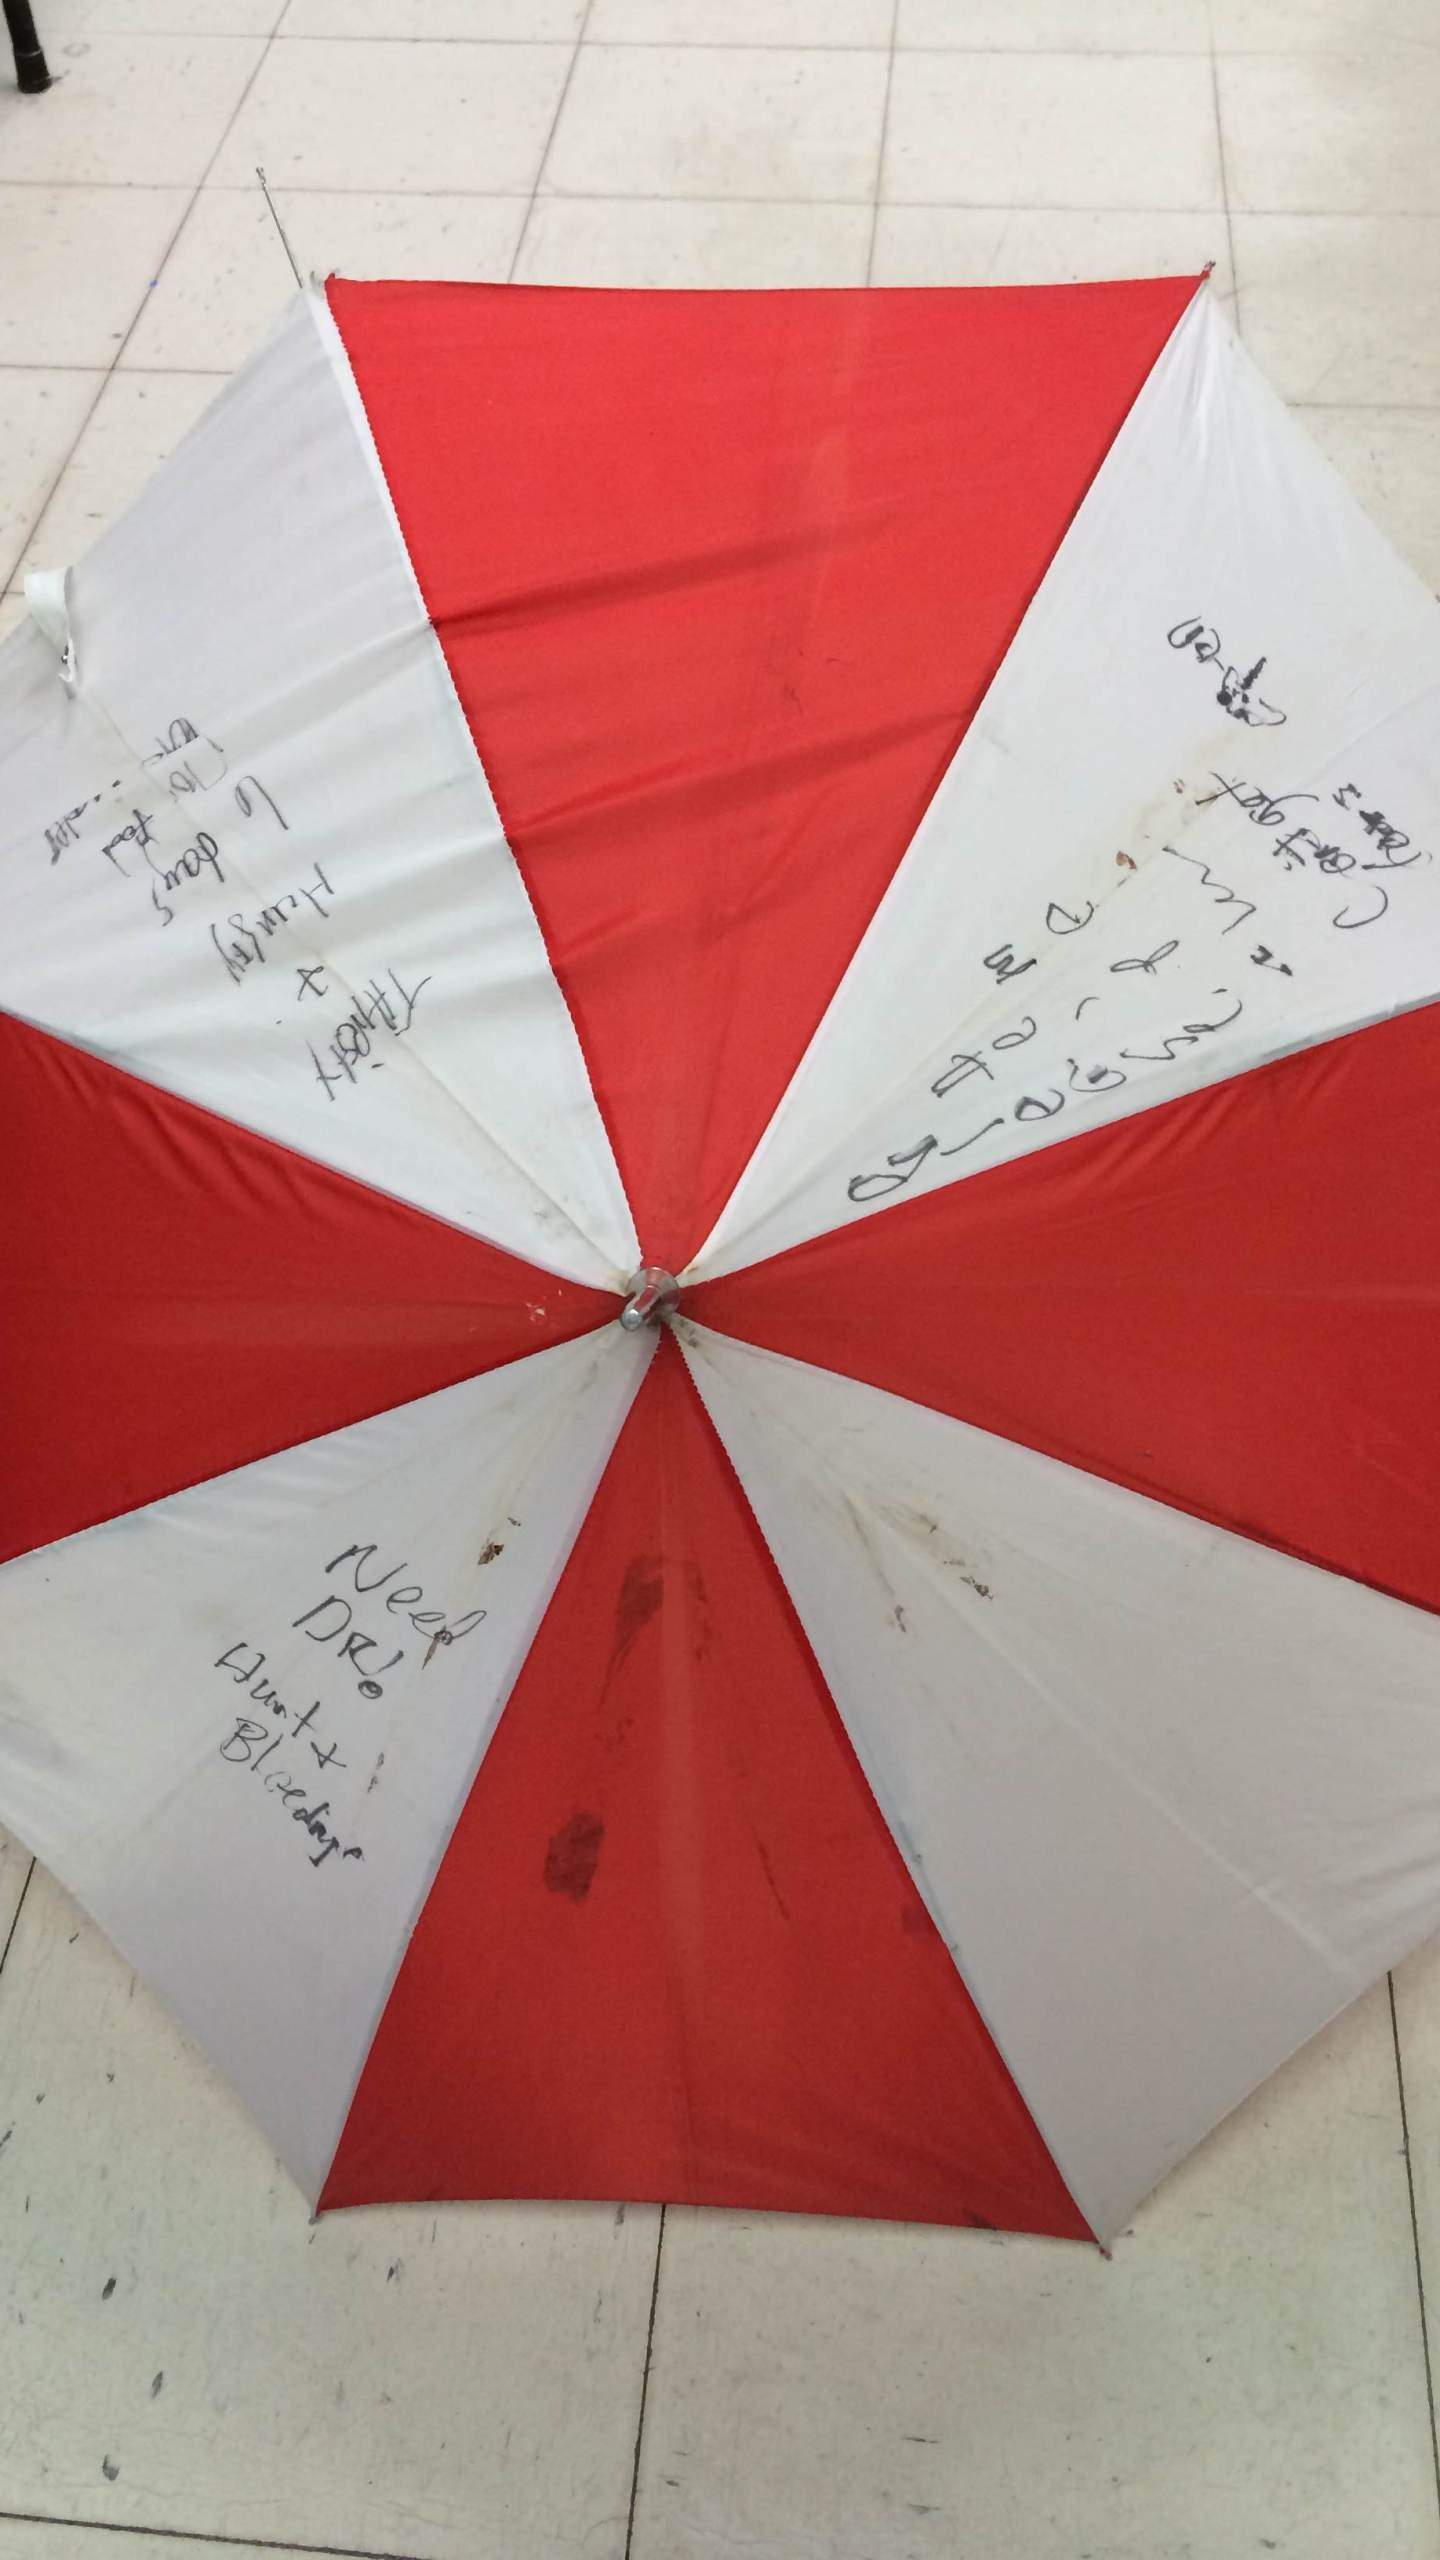 Kristin Hopkins, who survived for six days without food or water in her wrecked car, used this umbrella as an SOS message. (Photo: Brian Willie)